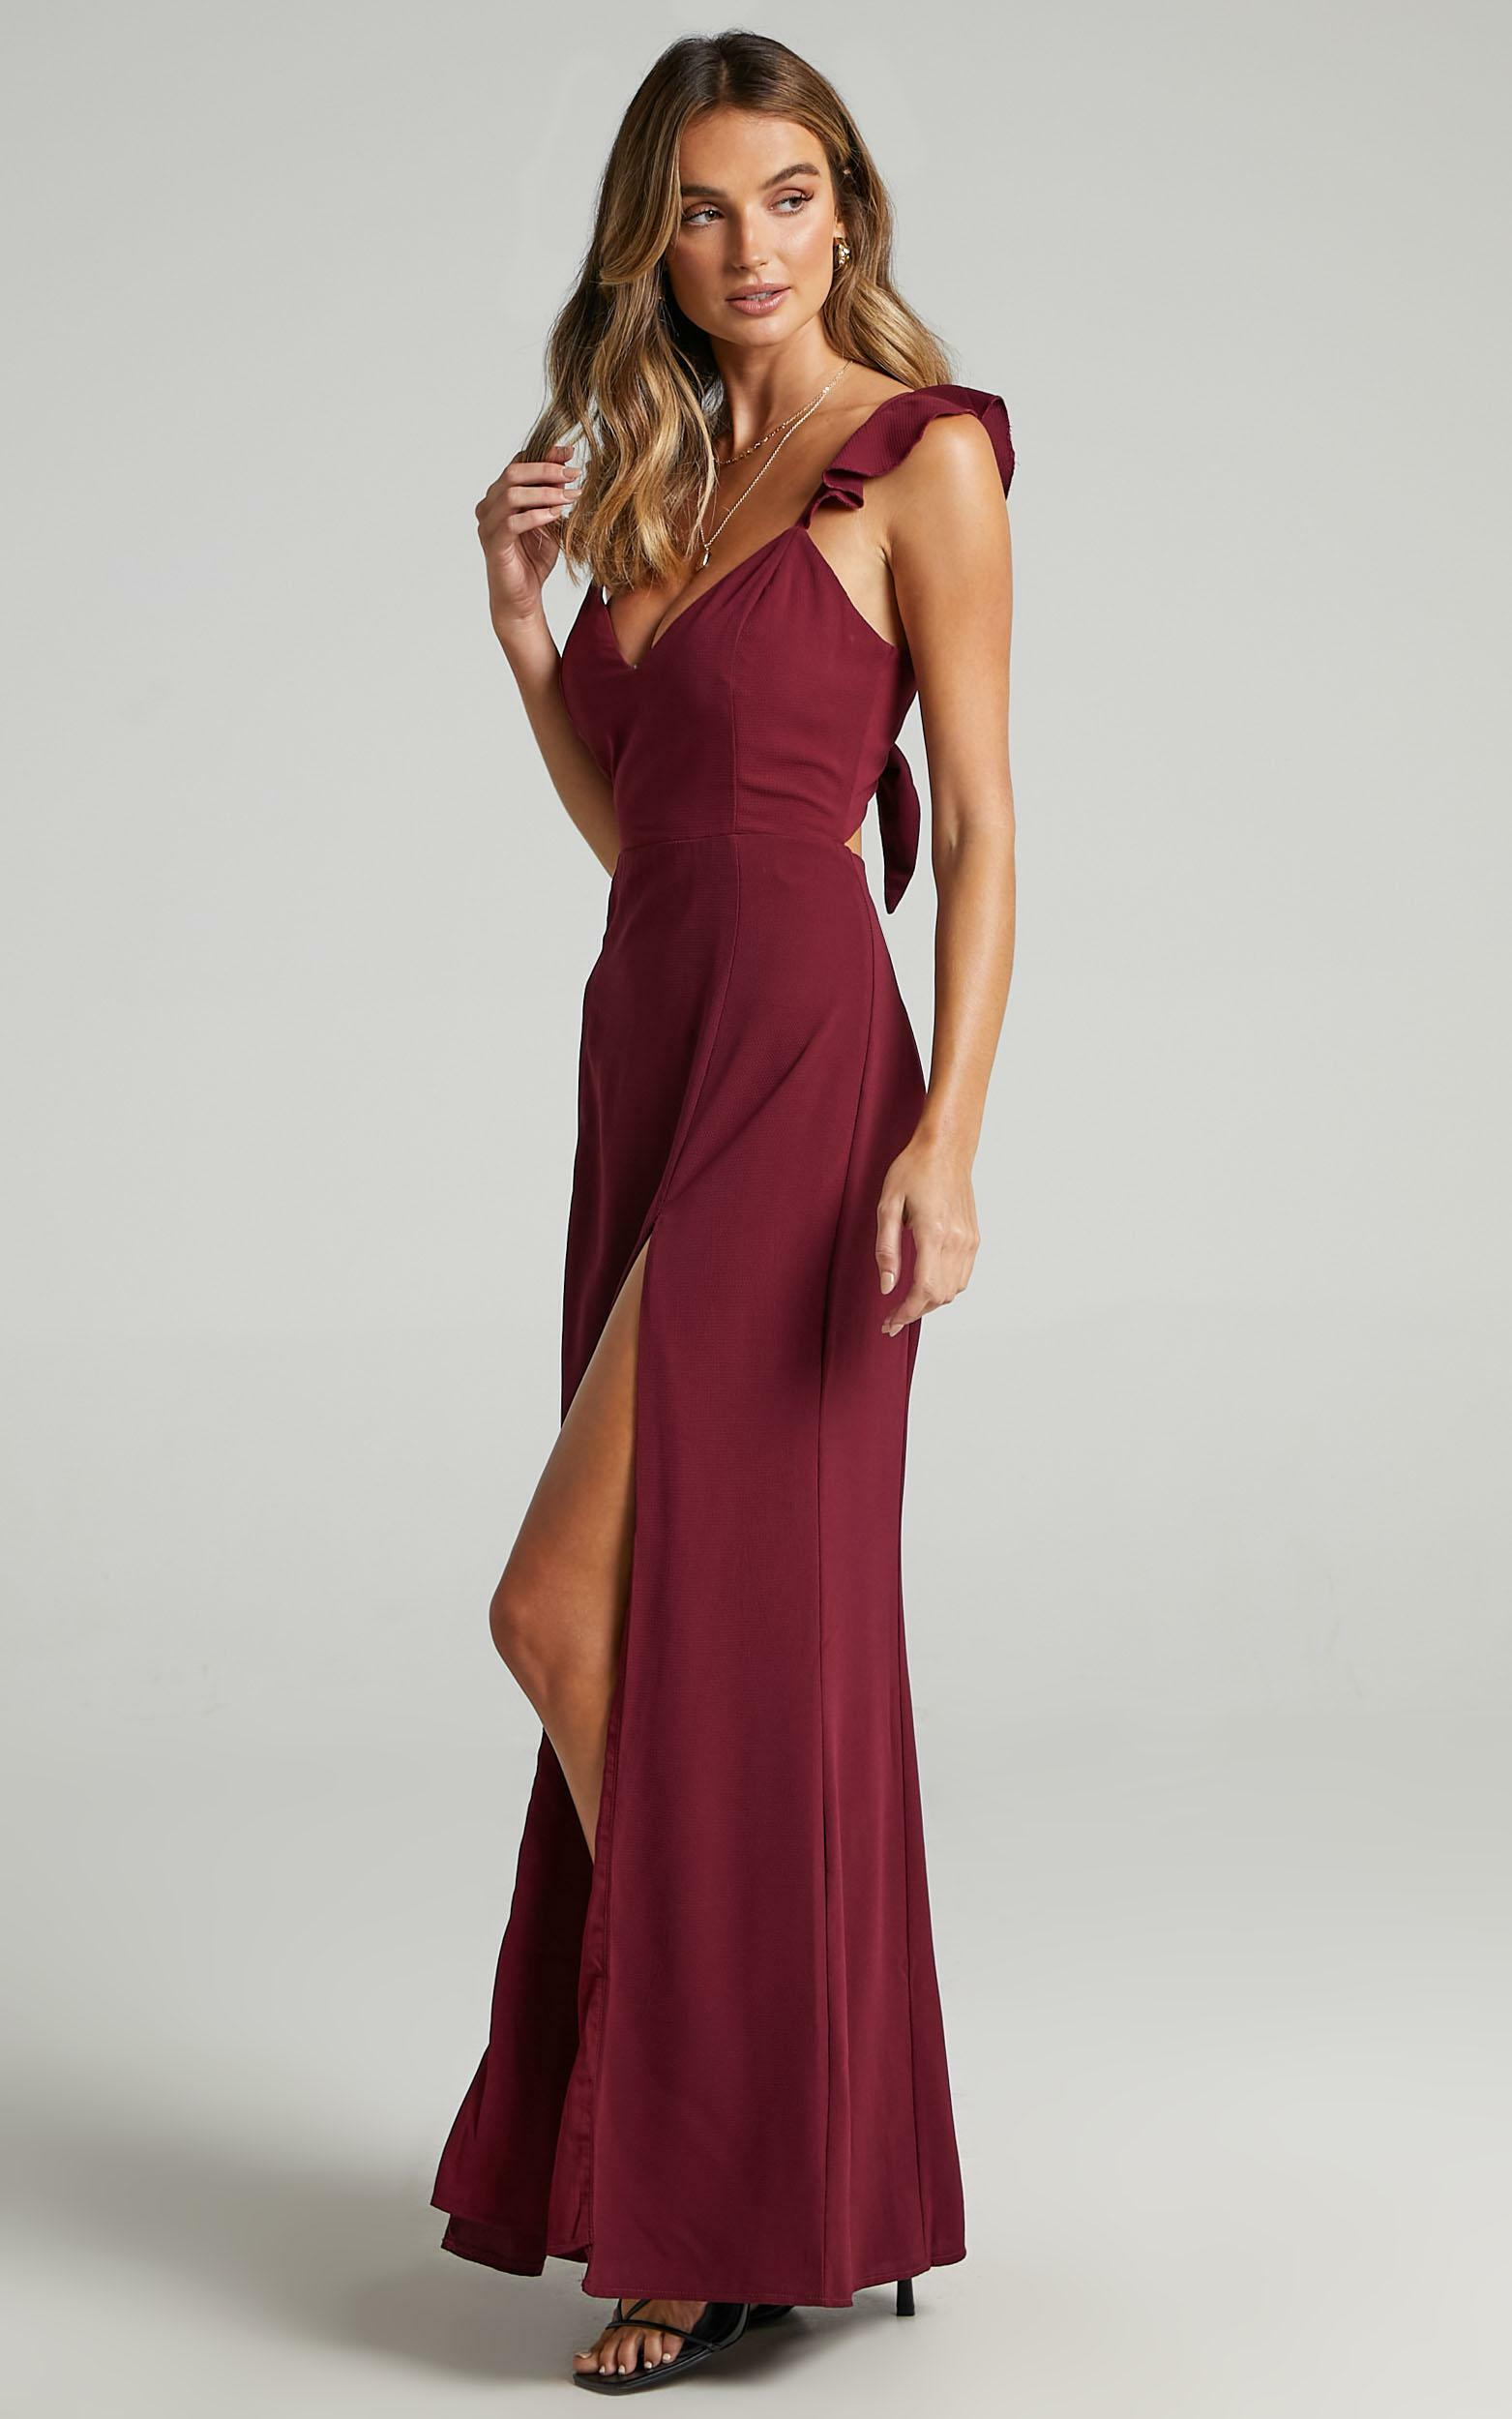 More Than This Dress in Wine - 06, WNE6, hi-res image number null